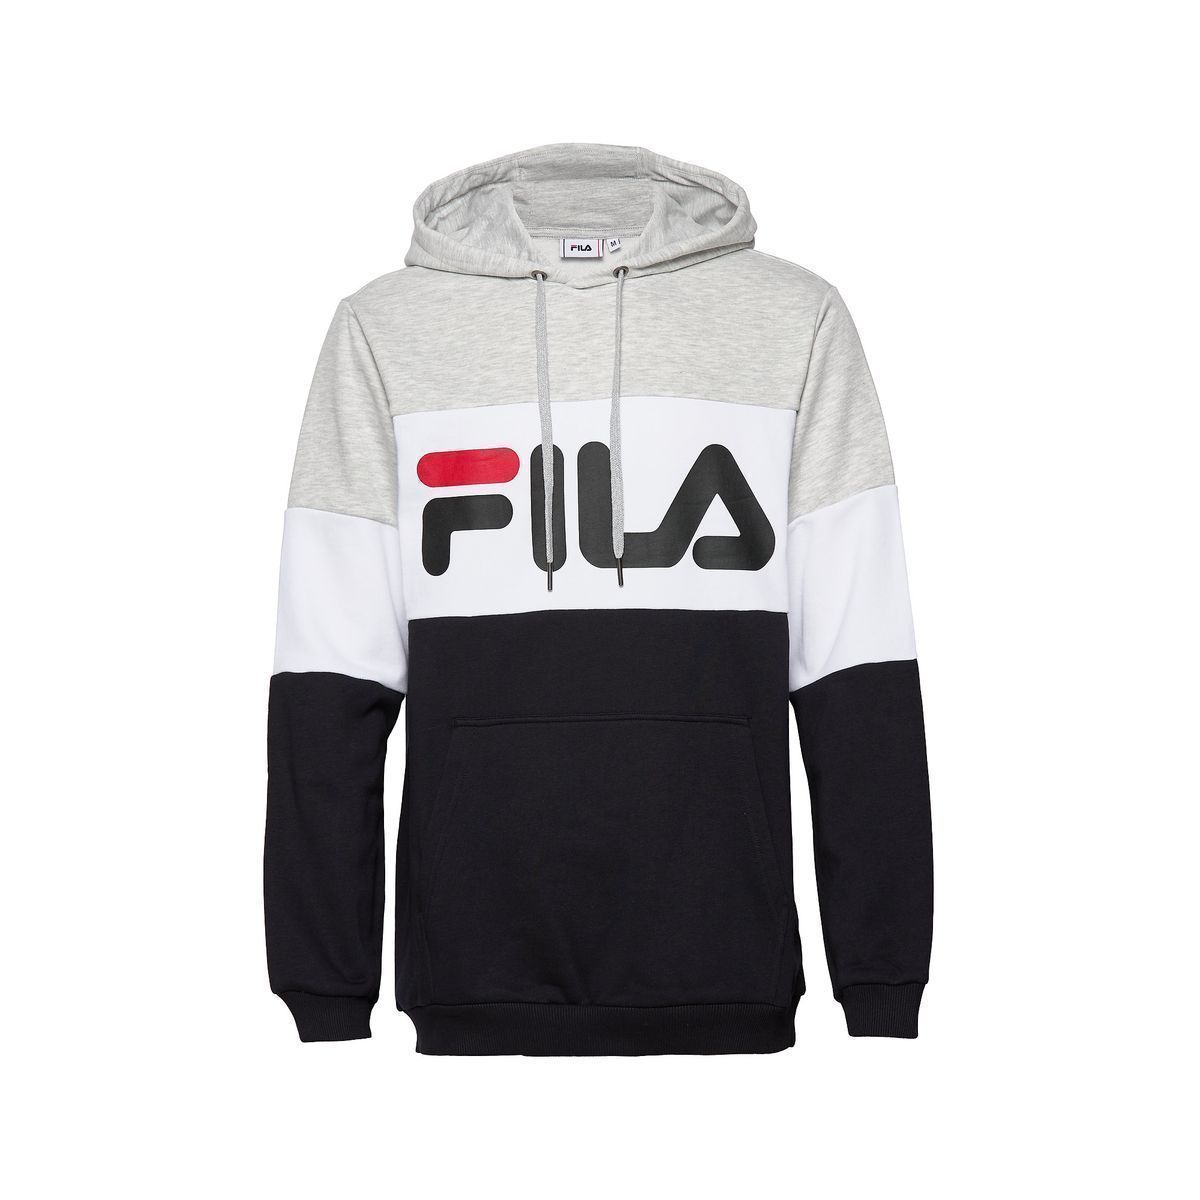 EDERLA LOW CUT NIGHT BLOCKED HOODY:GRIS/COTON, POLYESTER/COTON//Gris